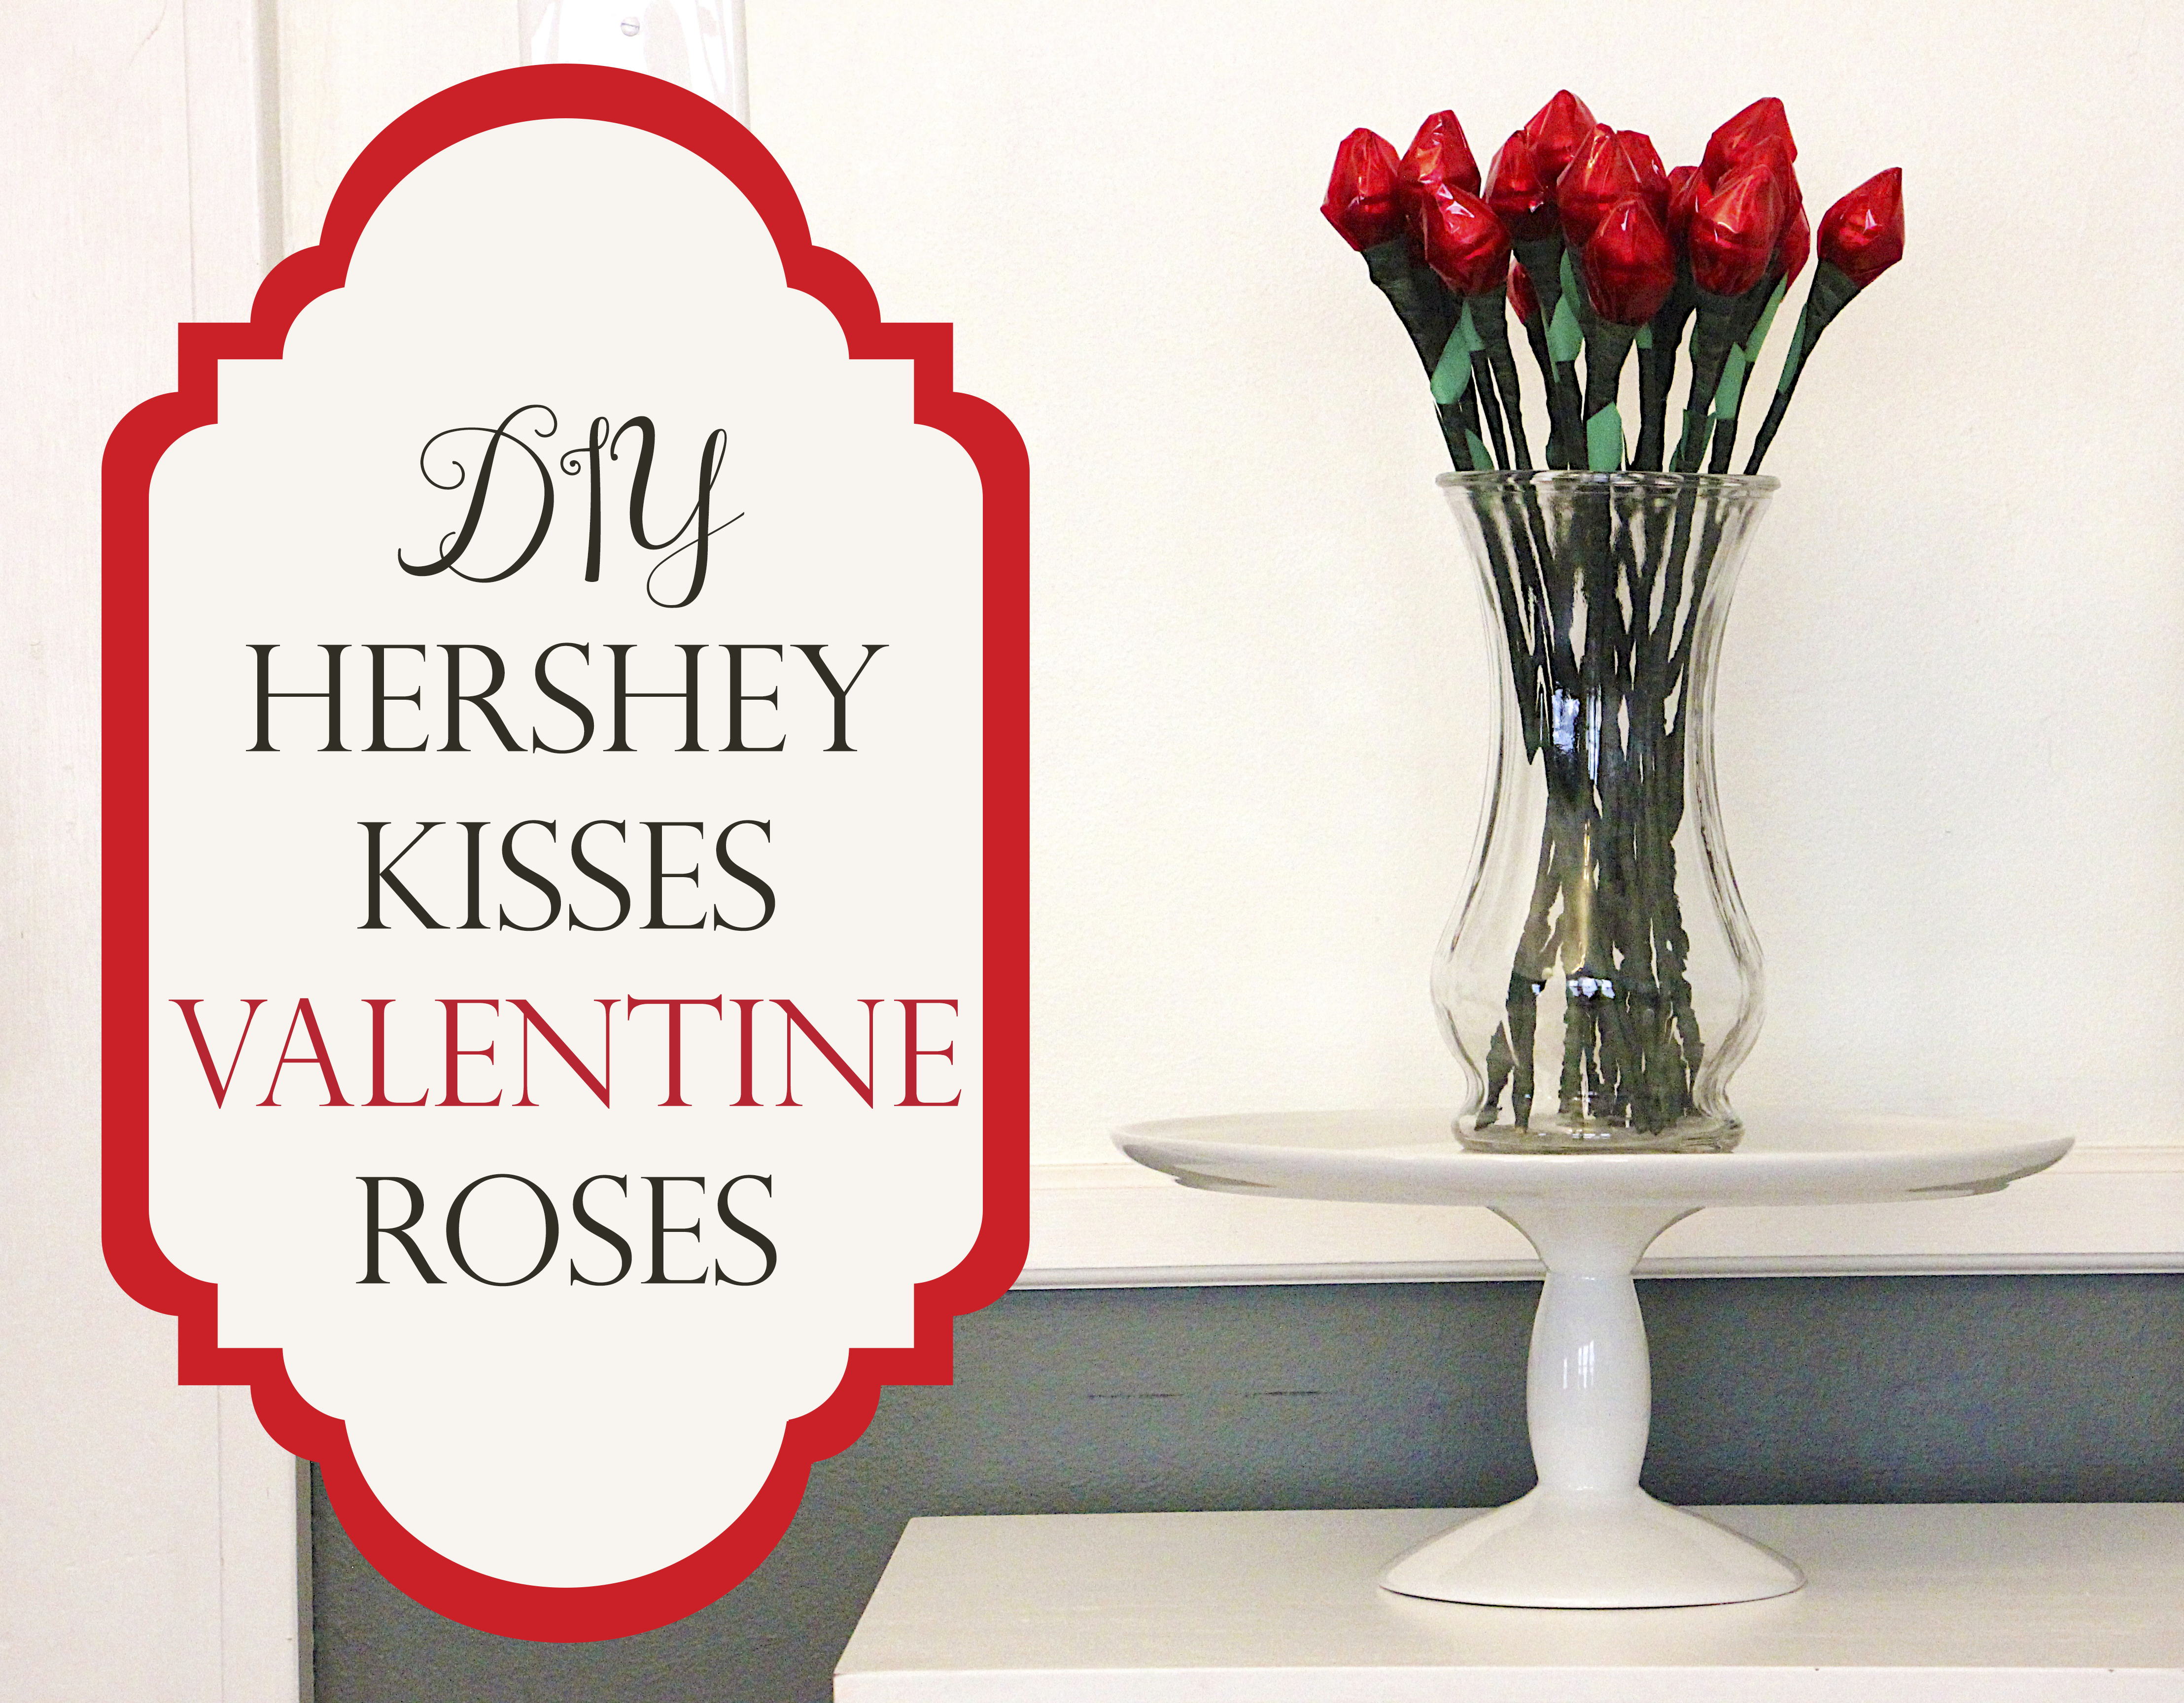 DIY Hershey Kisses Valentine Roses Tutorial